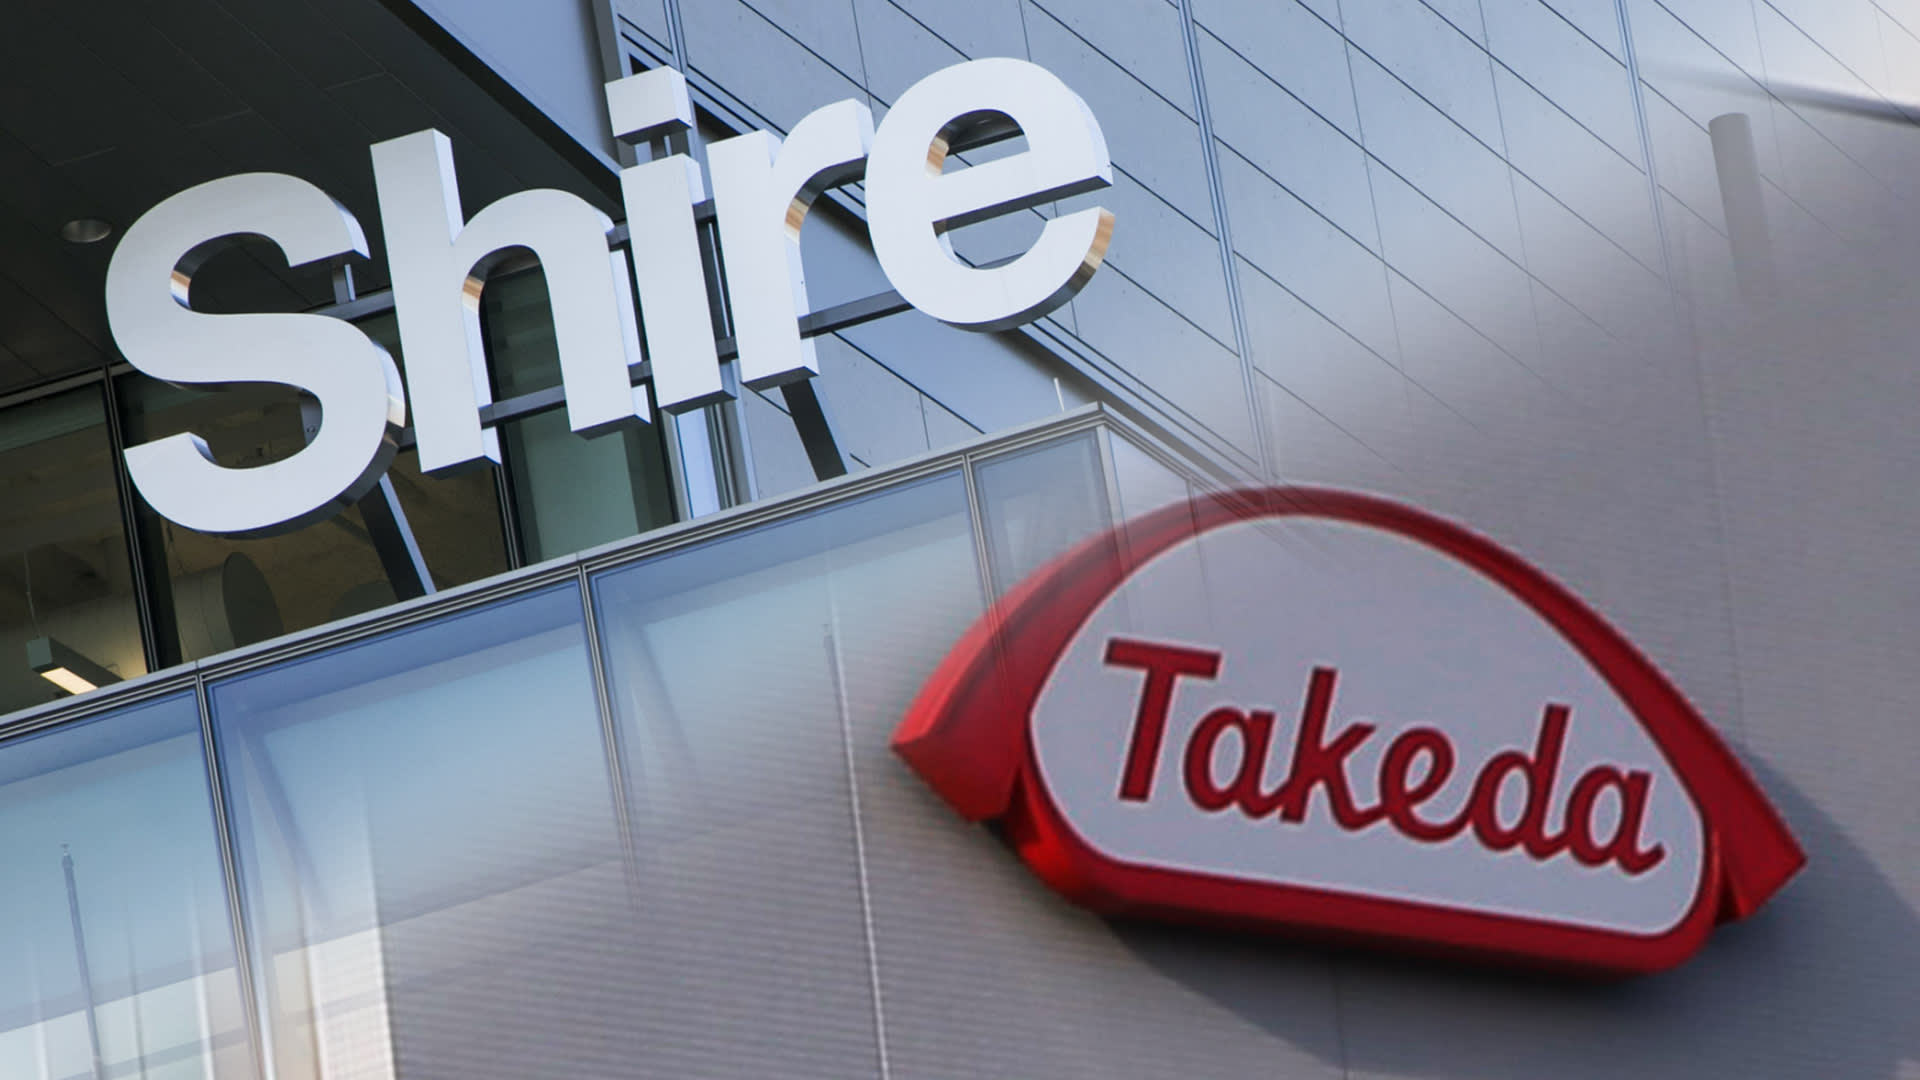 takeda shareholders approve shire acquisition nikkei asian review